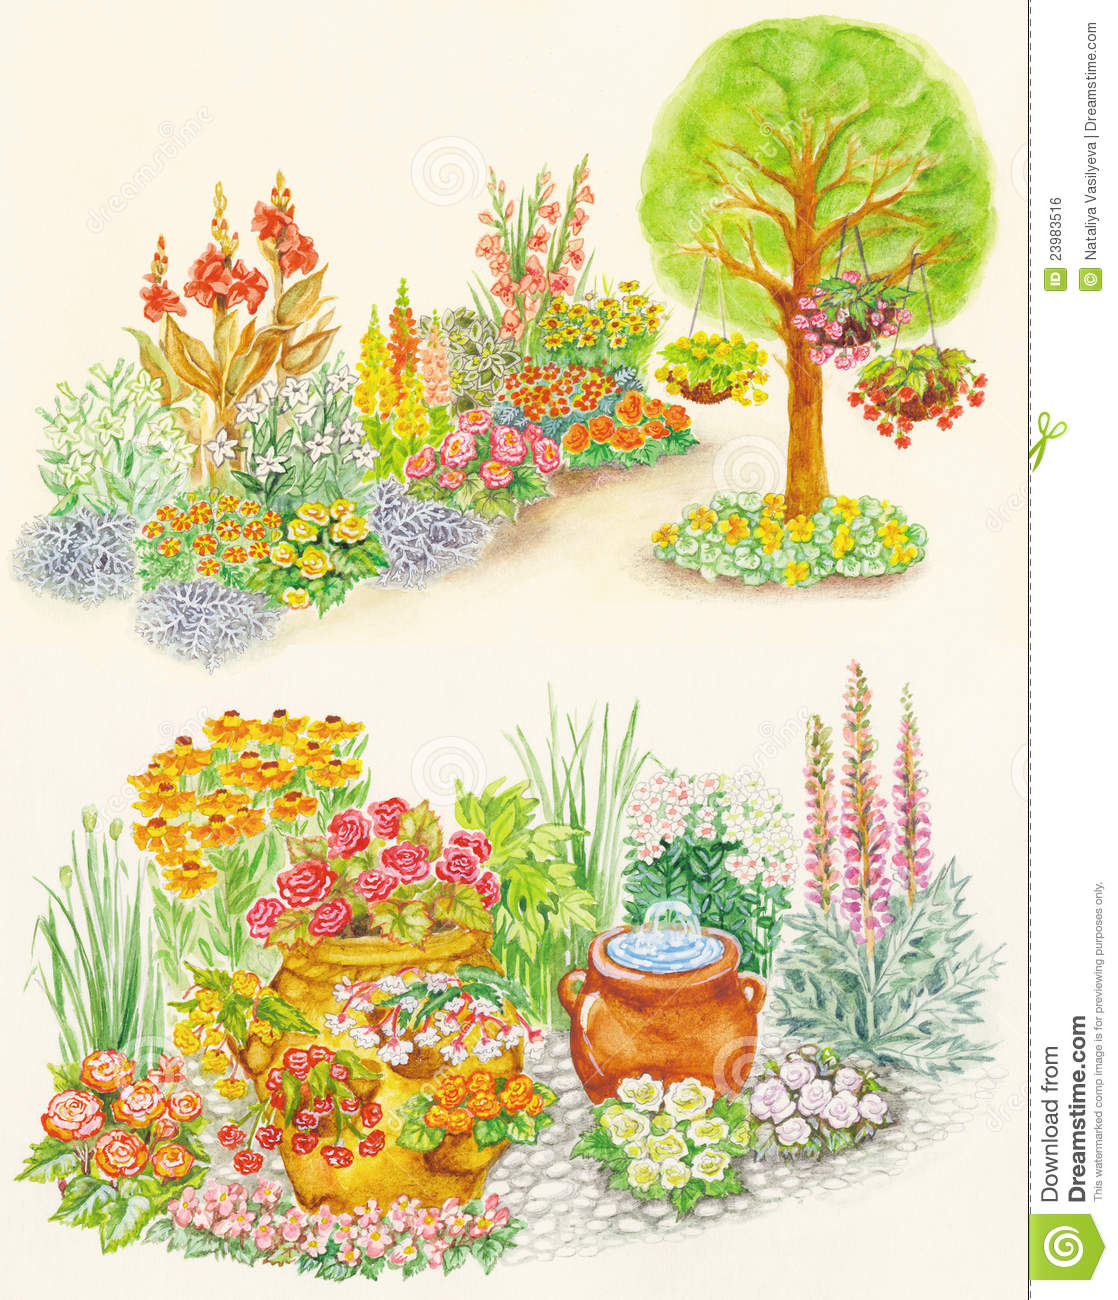 Garden design of flower beds with ornamental flowe stock for Plans for a flower garden layout